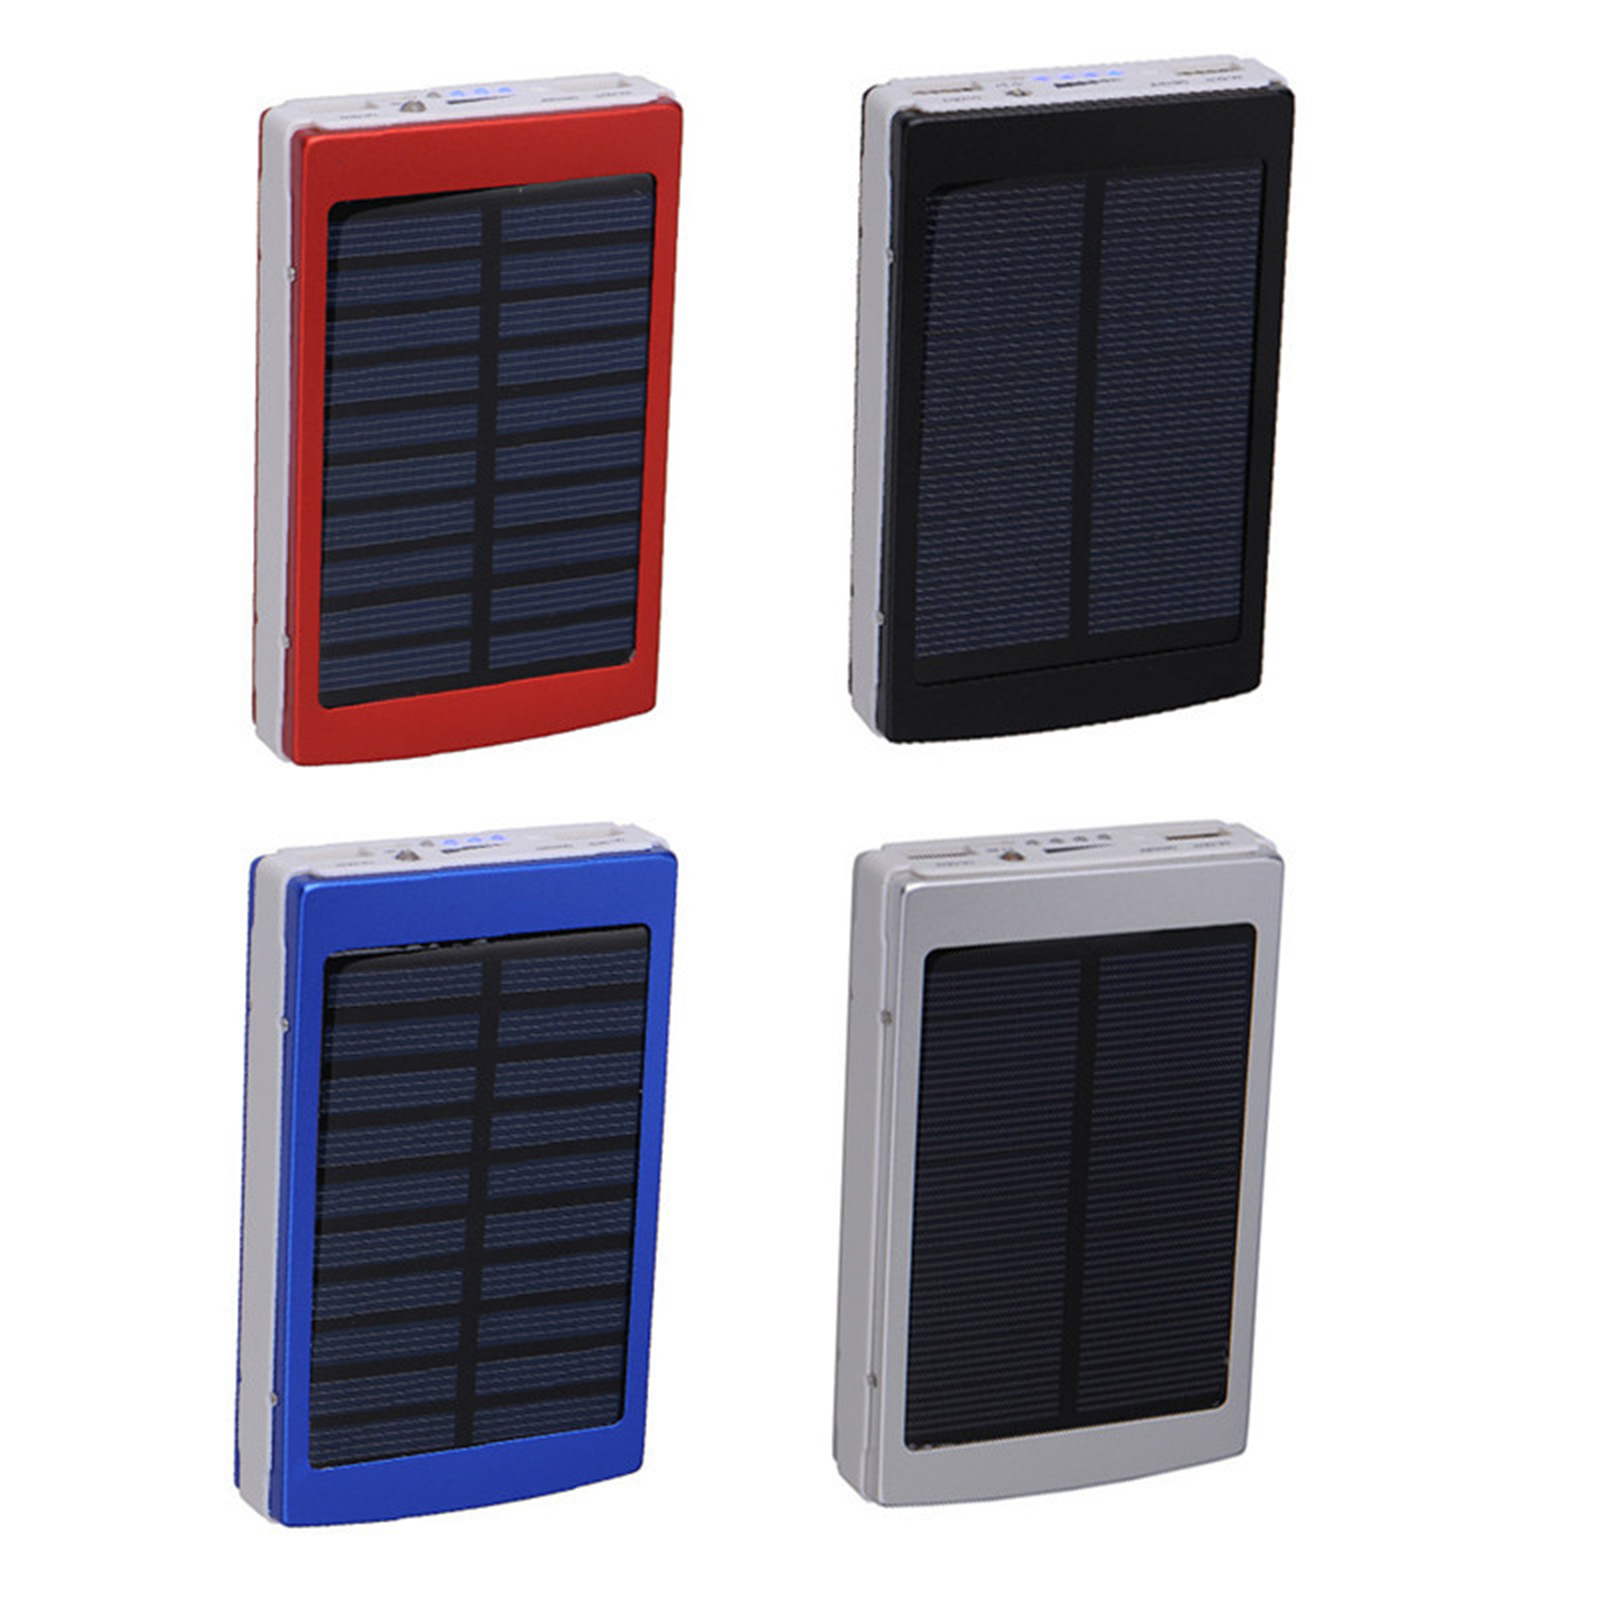 10000 mah solar zusatz akku pack power bank ladeger t. Black Bedroom Furniture Sets. Home Design Ideas